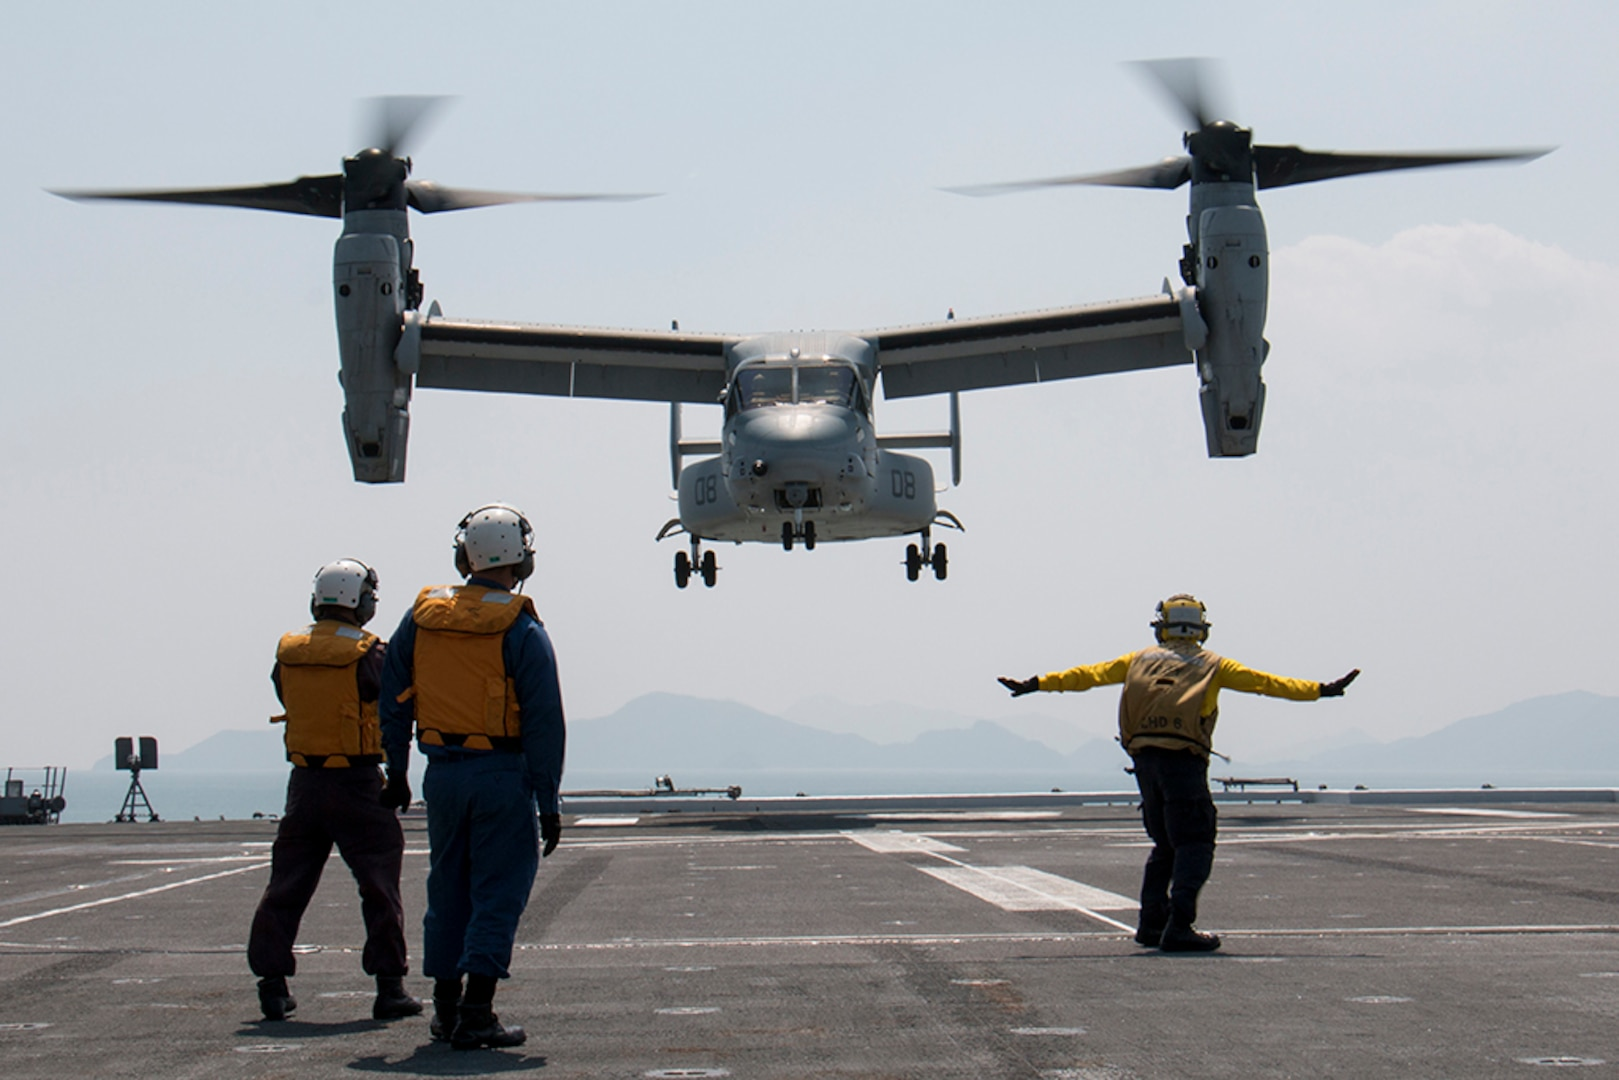 KUMAMOTO, Japan (April 19, 2016) - U.S. Marine Corps MV-22B Osprey lands aboard the destroyer helicopter ship JS Hyuga while supporting Japan's earthquake relief efforts near Kumamoto. The Osprey is assigned to Marine Medium Tiltrotor Squadron 265, 31st Marine Expeditionary Unit.